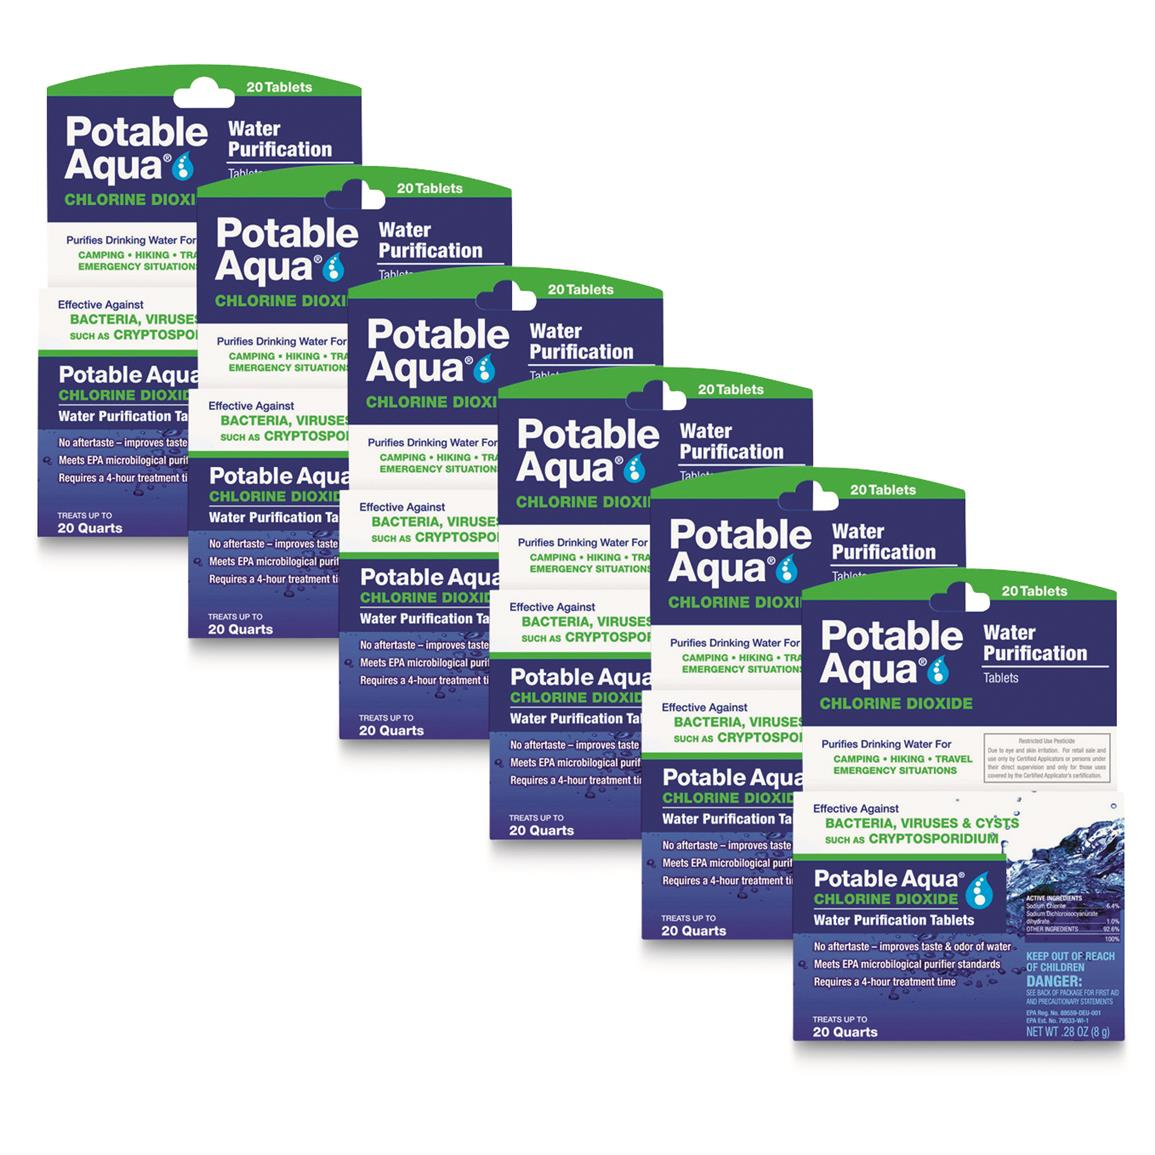 Potable Aqua Chlorine Dioxide Water Purification Tablets, 120 Count